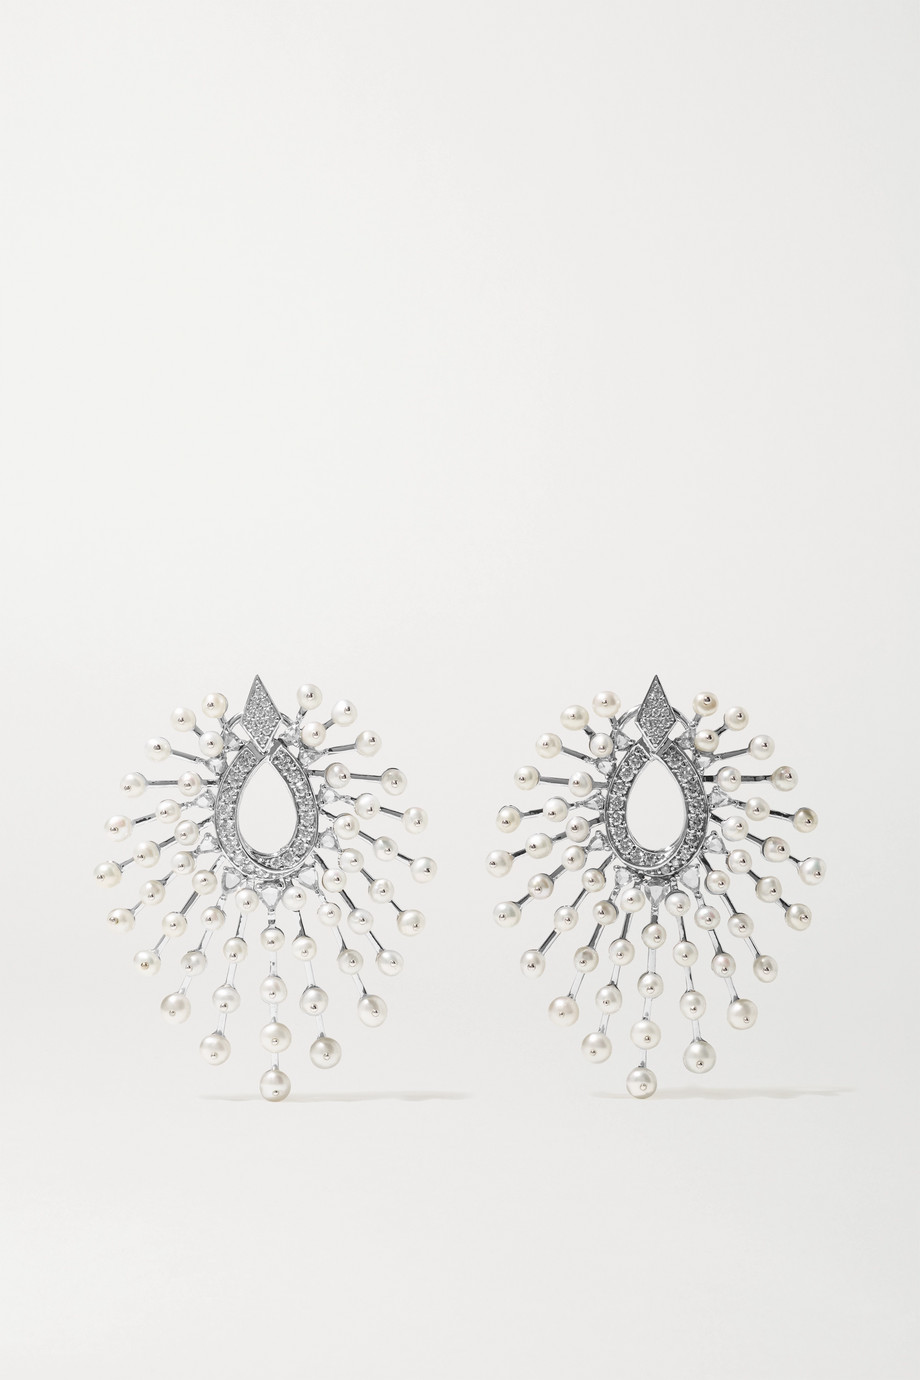 Amrapali 18-karat white gold, diamond and pearl earrings